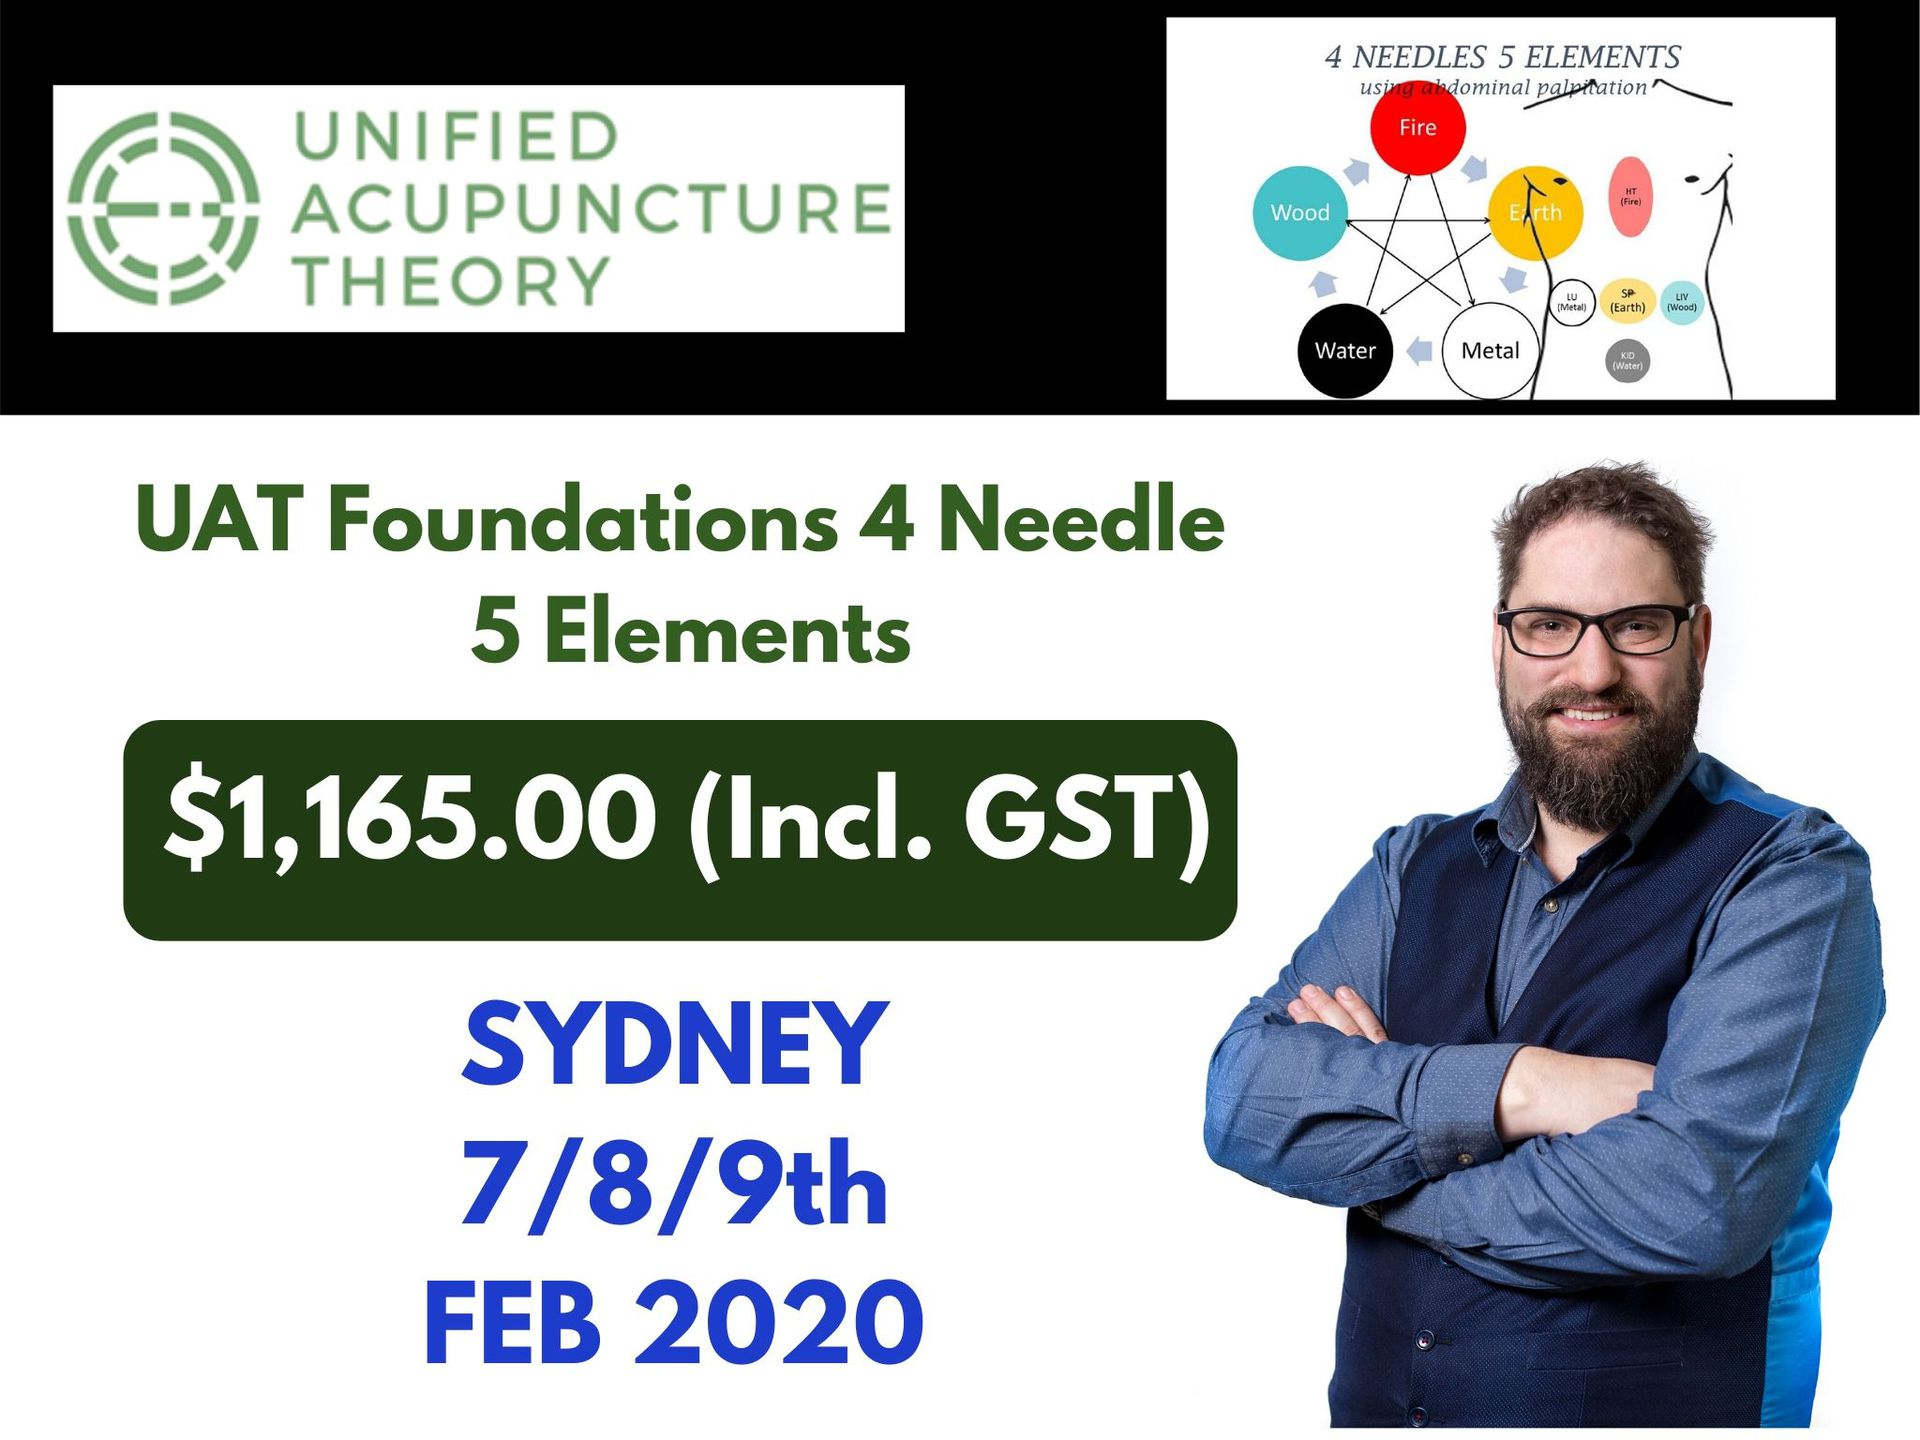 UAT Foundations 4 Needle 5 Elements - SYD